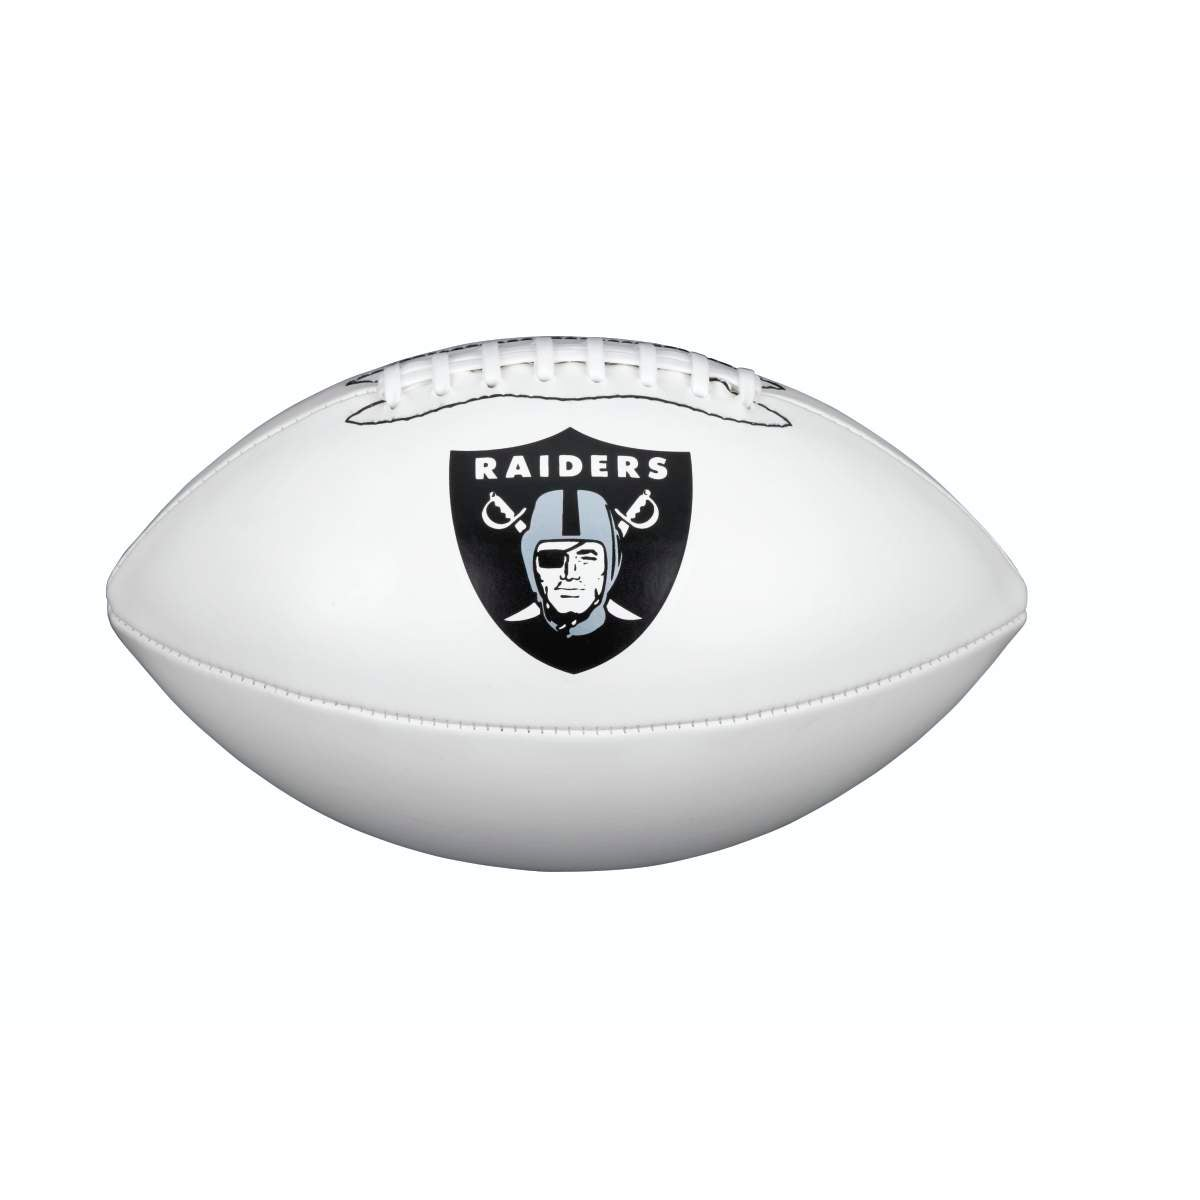 ? NFL TEAM LOGO AUTOGRAPH FOOTBALL - OFFICIAL, LAS VEGAS RAIDERS